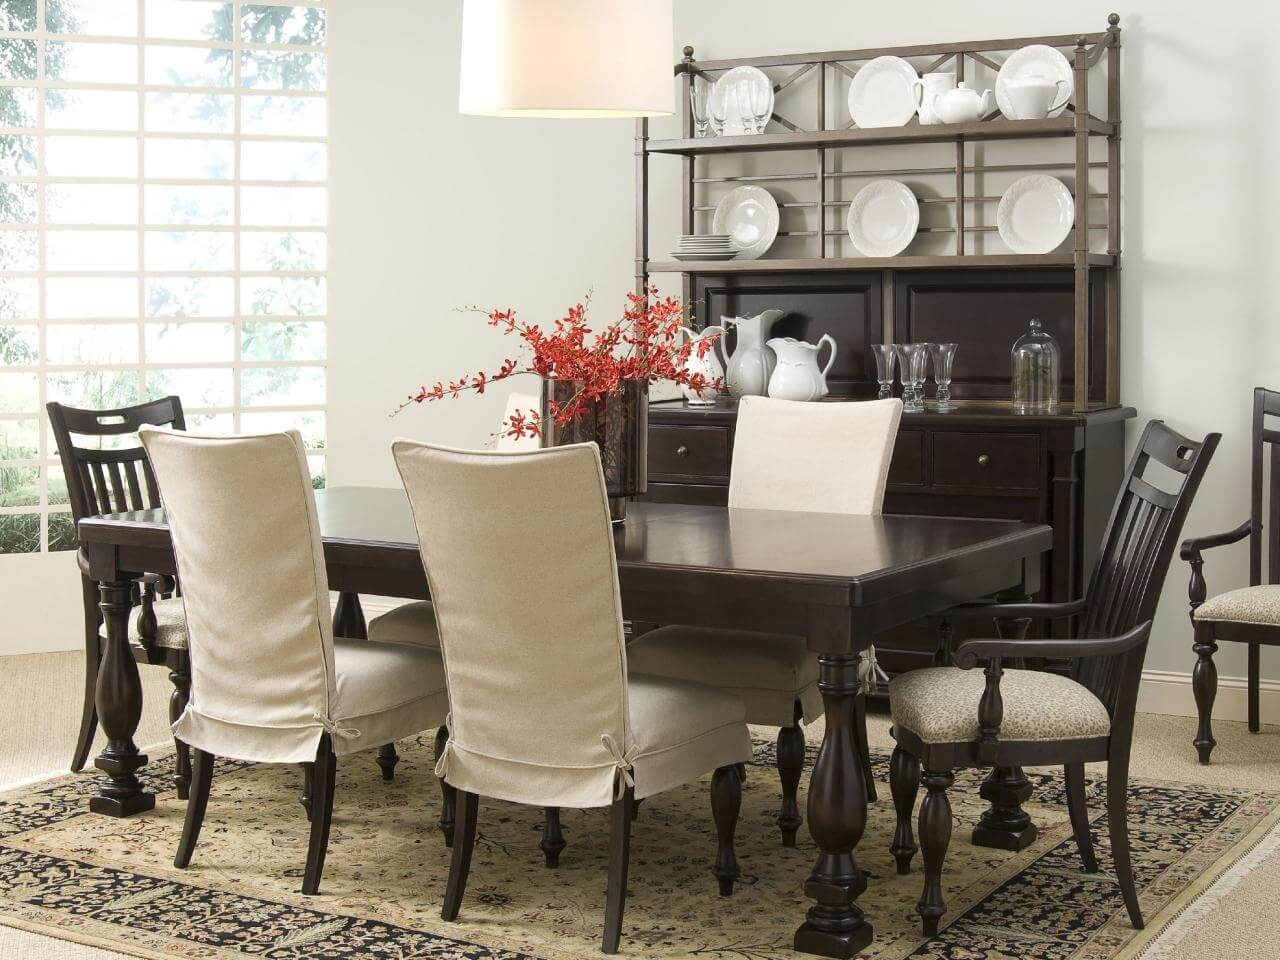 These great dining rooms have upholstered chairs for extra elegance with a multi floral carpet and back wood chairs and table. In contrast with beige fabric that overs the chairs.